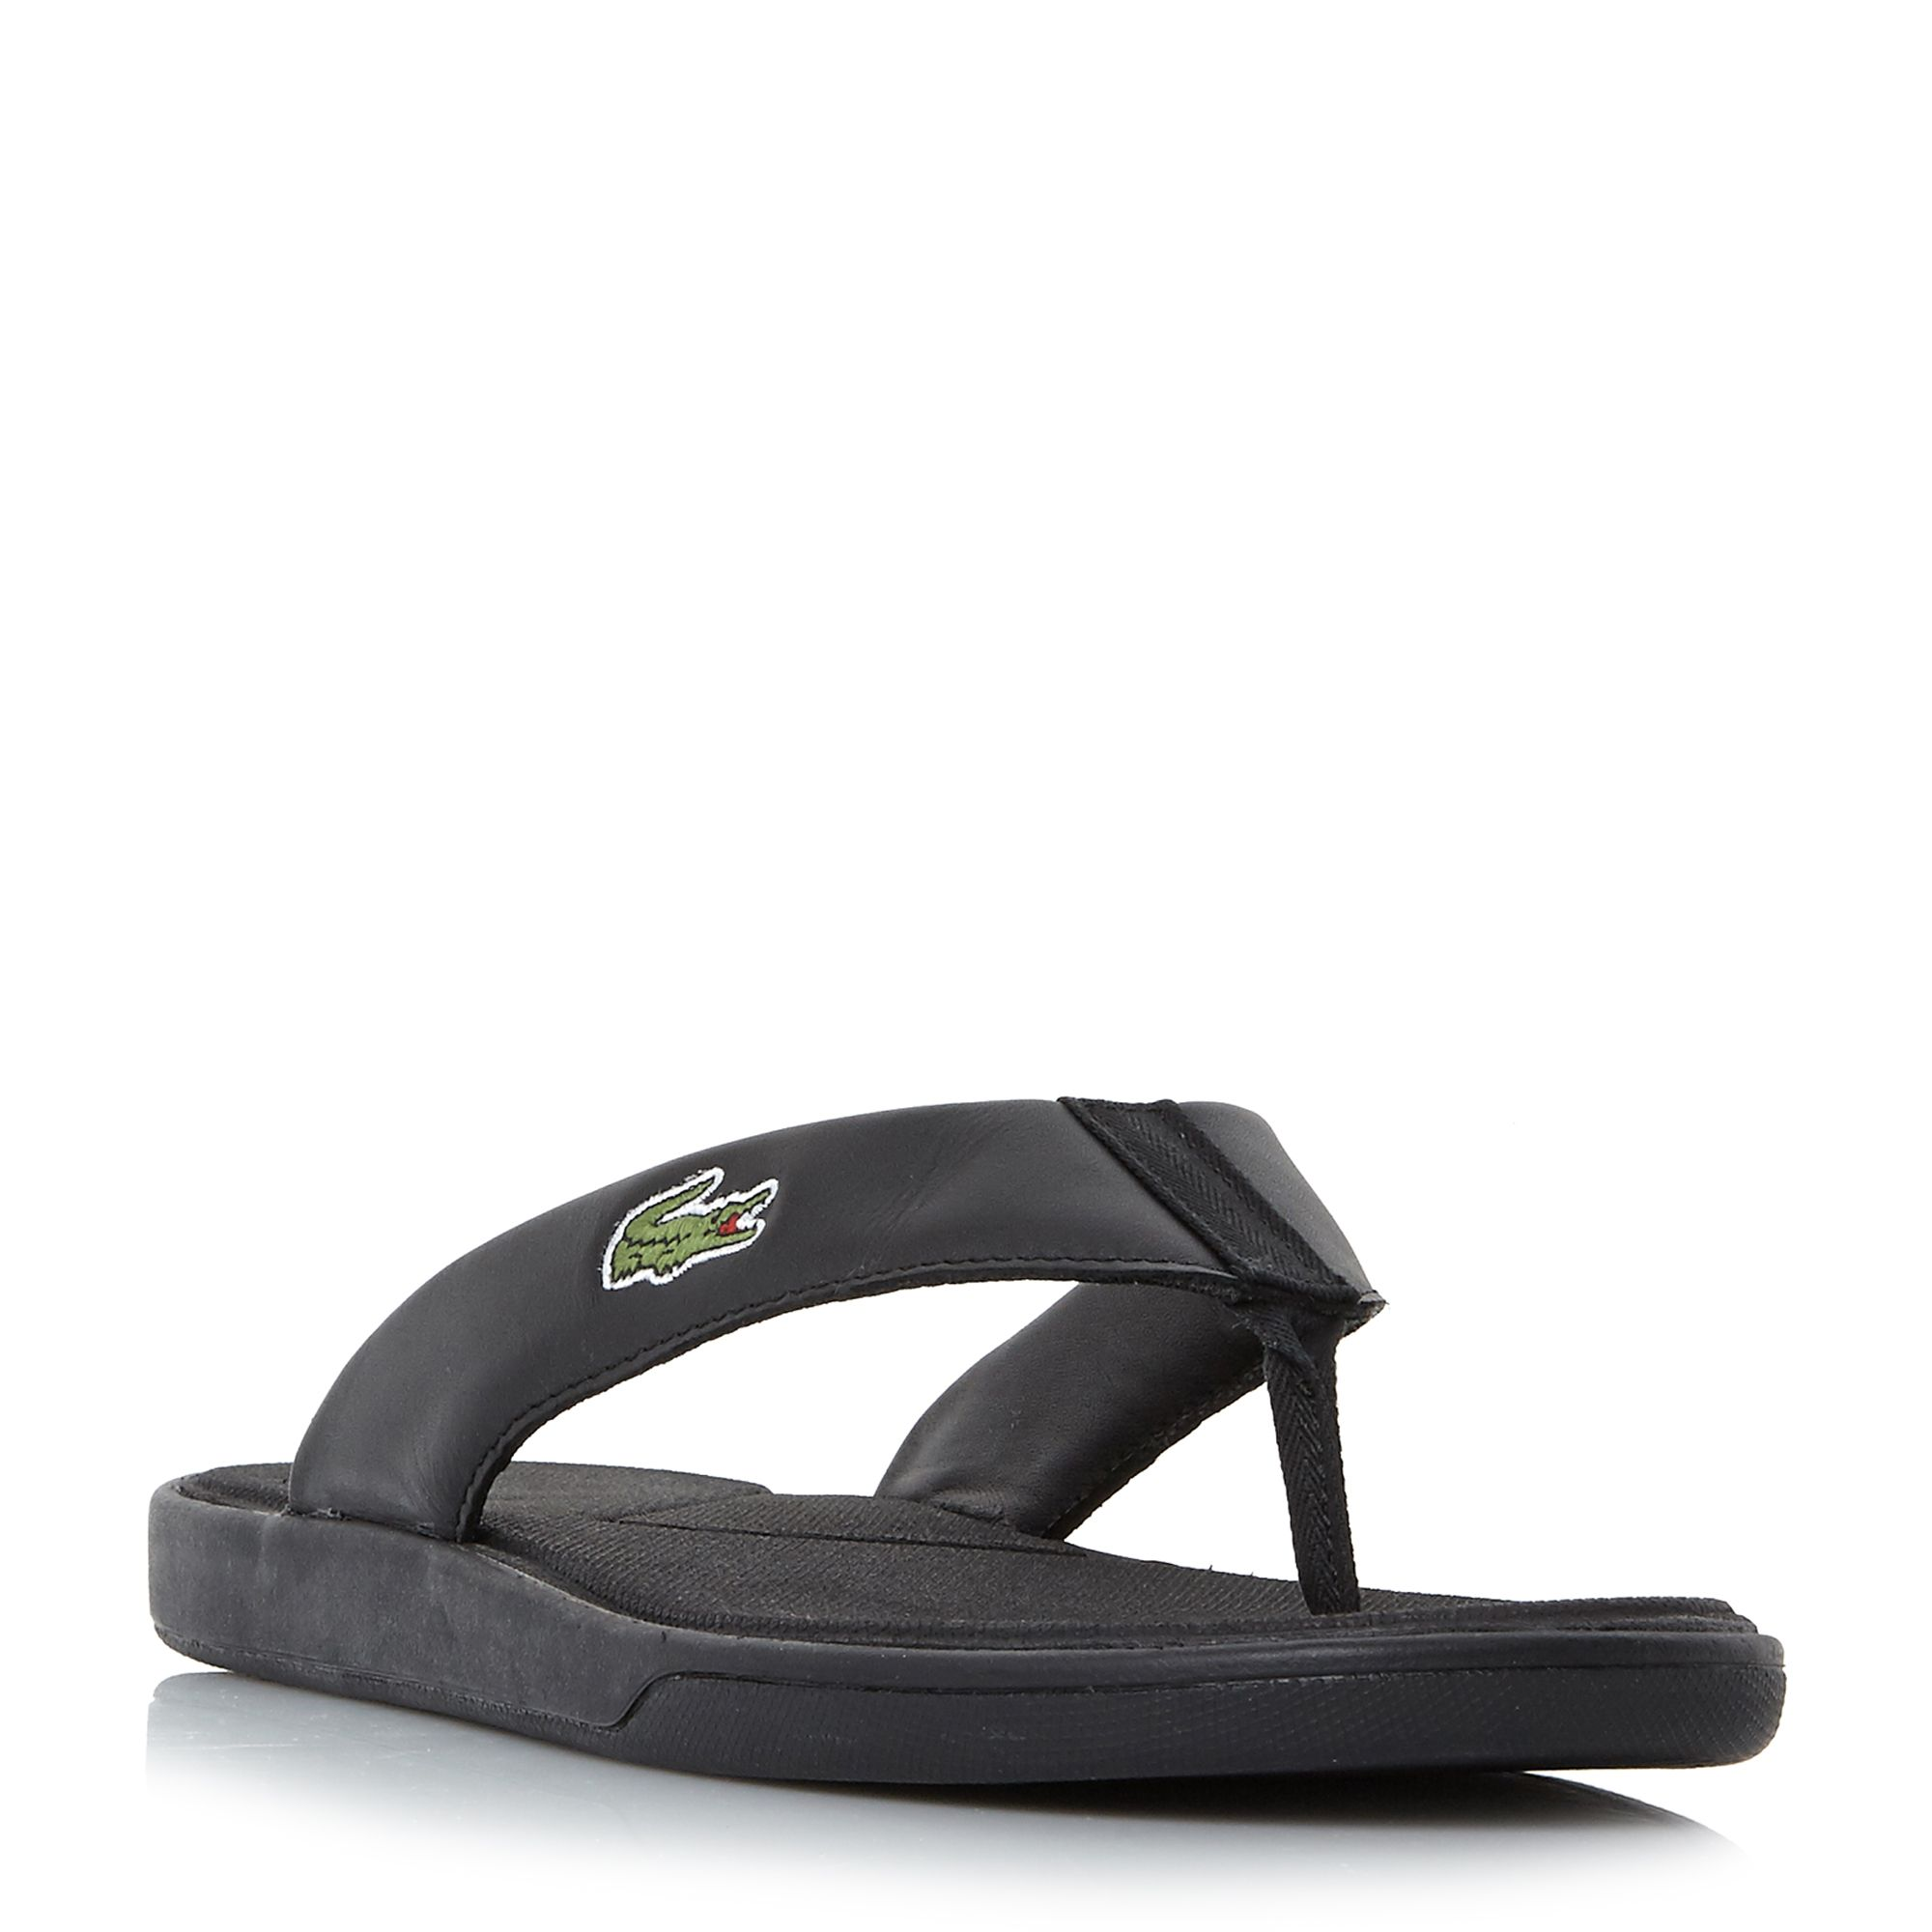 Men's Lacoste L.30 Leather Toe Post Flip Flops, Black